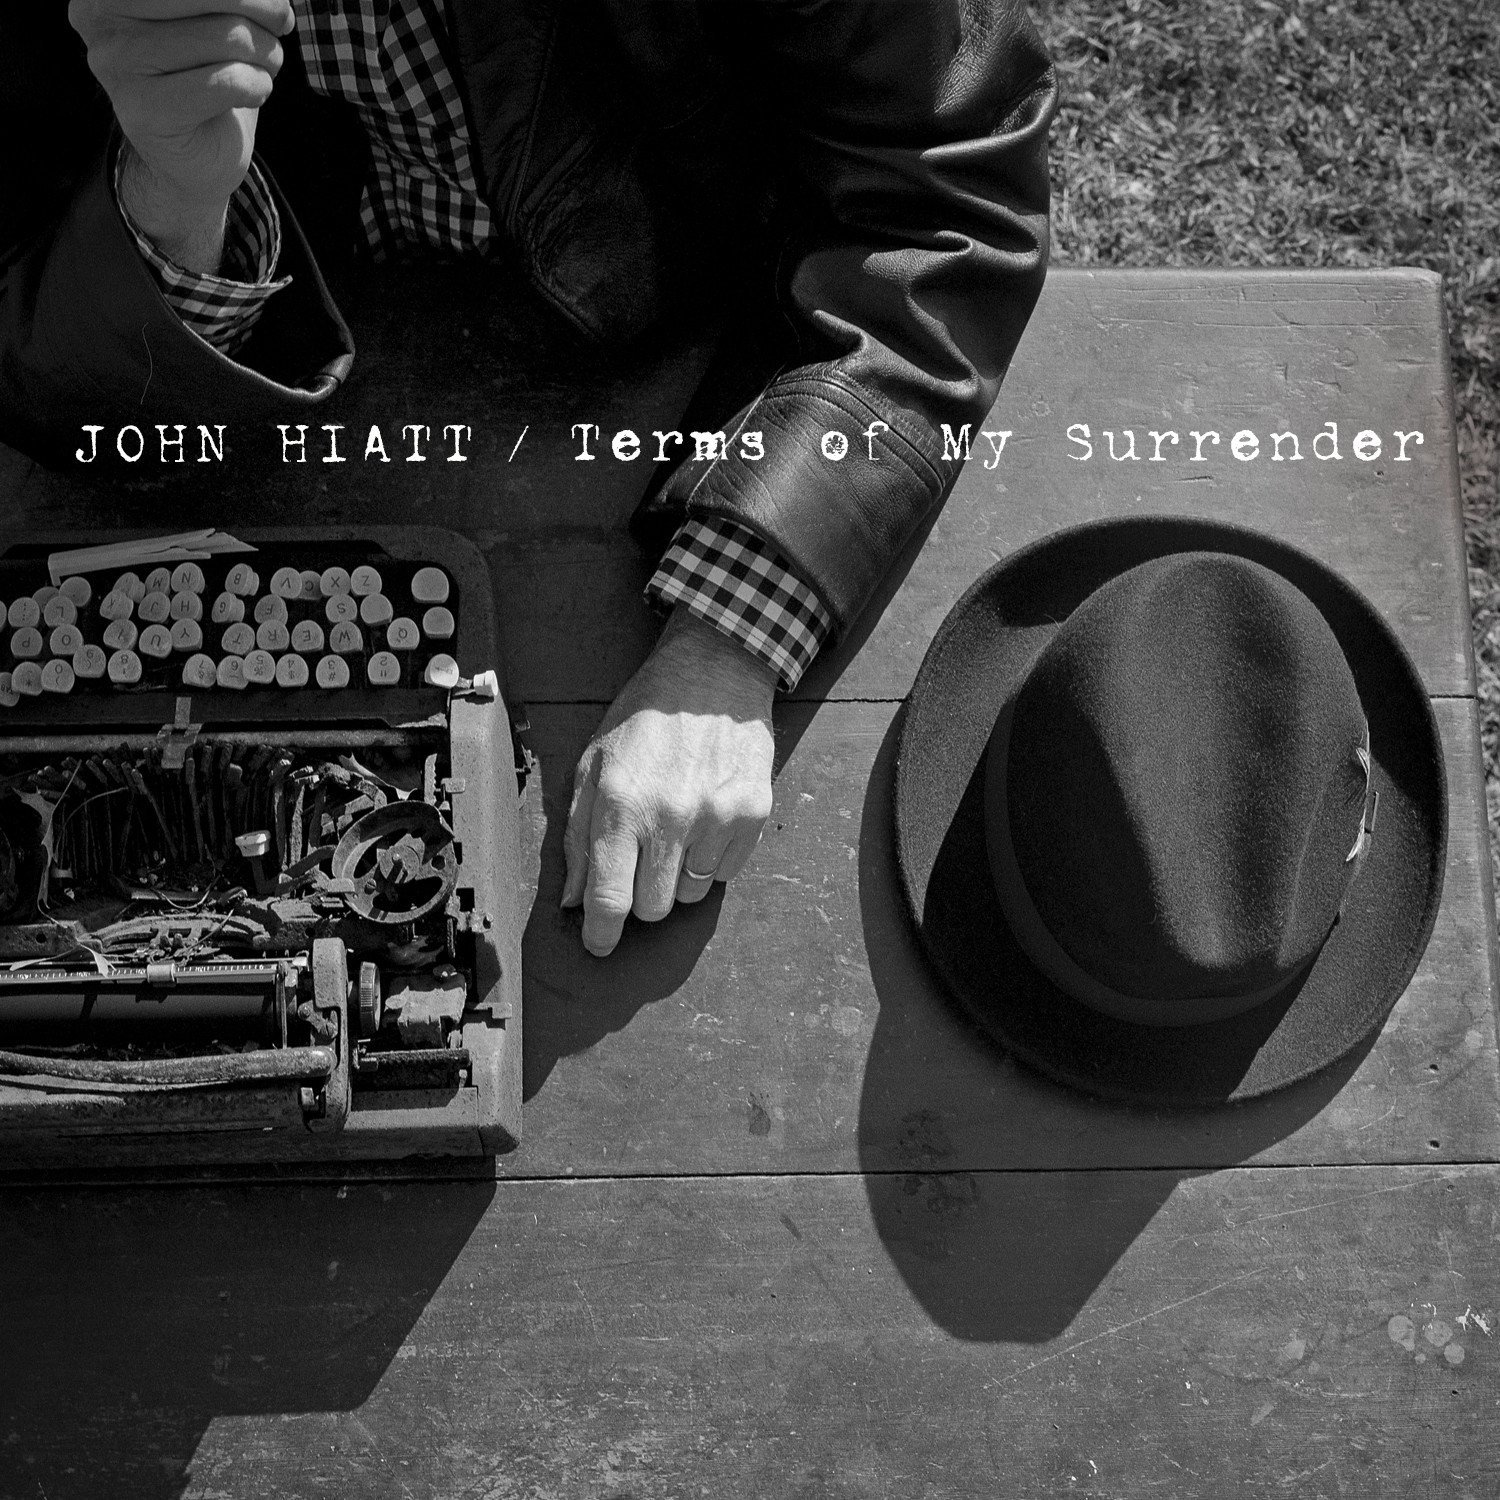 John Hiatt- Terms of my surrender